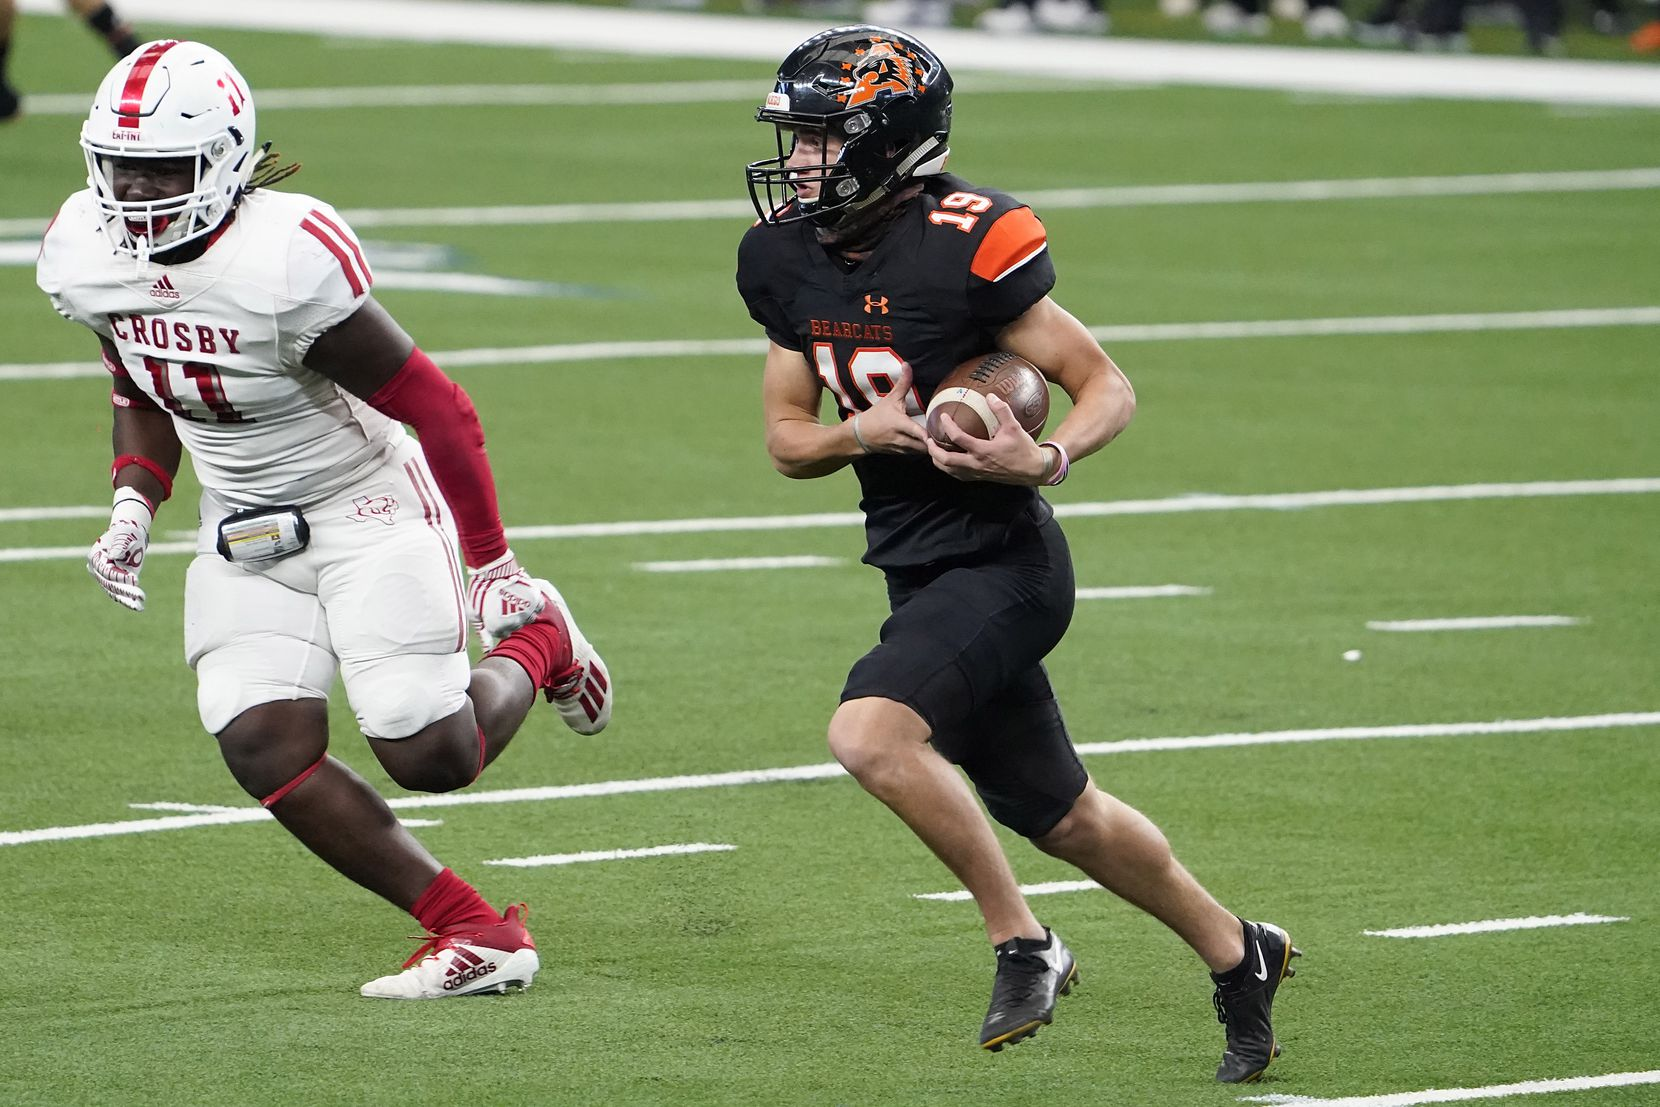 Aledo punder Clay Murador (19) gets past Crosby linebacker Jamauri Johnson (11) for a first down on a fake punt during the first half of the Class 5A Division II state football championship game at AT&T Stadium on Friday, Jan. 15, 2021, in Arlington. (Smiley N. Pool/The Dallas Morning News)